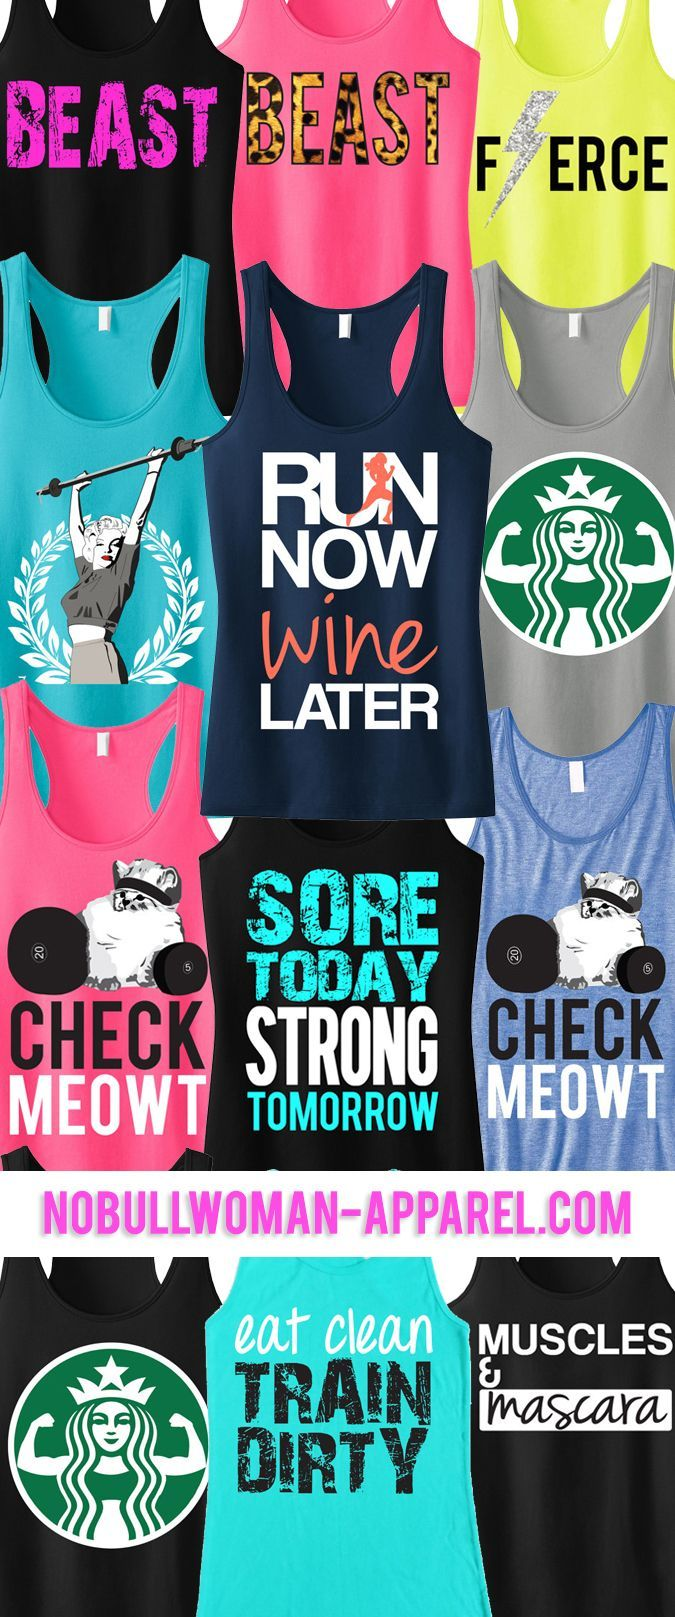 Look Great and Motivate with New #Workout Tanks. Pick ANY 3 and save 15%. Only $63.95! Click here to see them all http://www.nobullwoman-apparel.com/collections/sale-special-deals/products/3-workout-fitness-tank-tops-15-off-bundle-workout